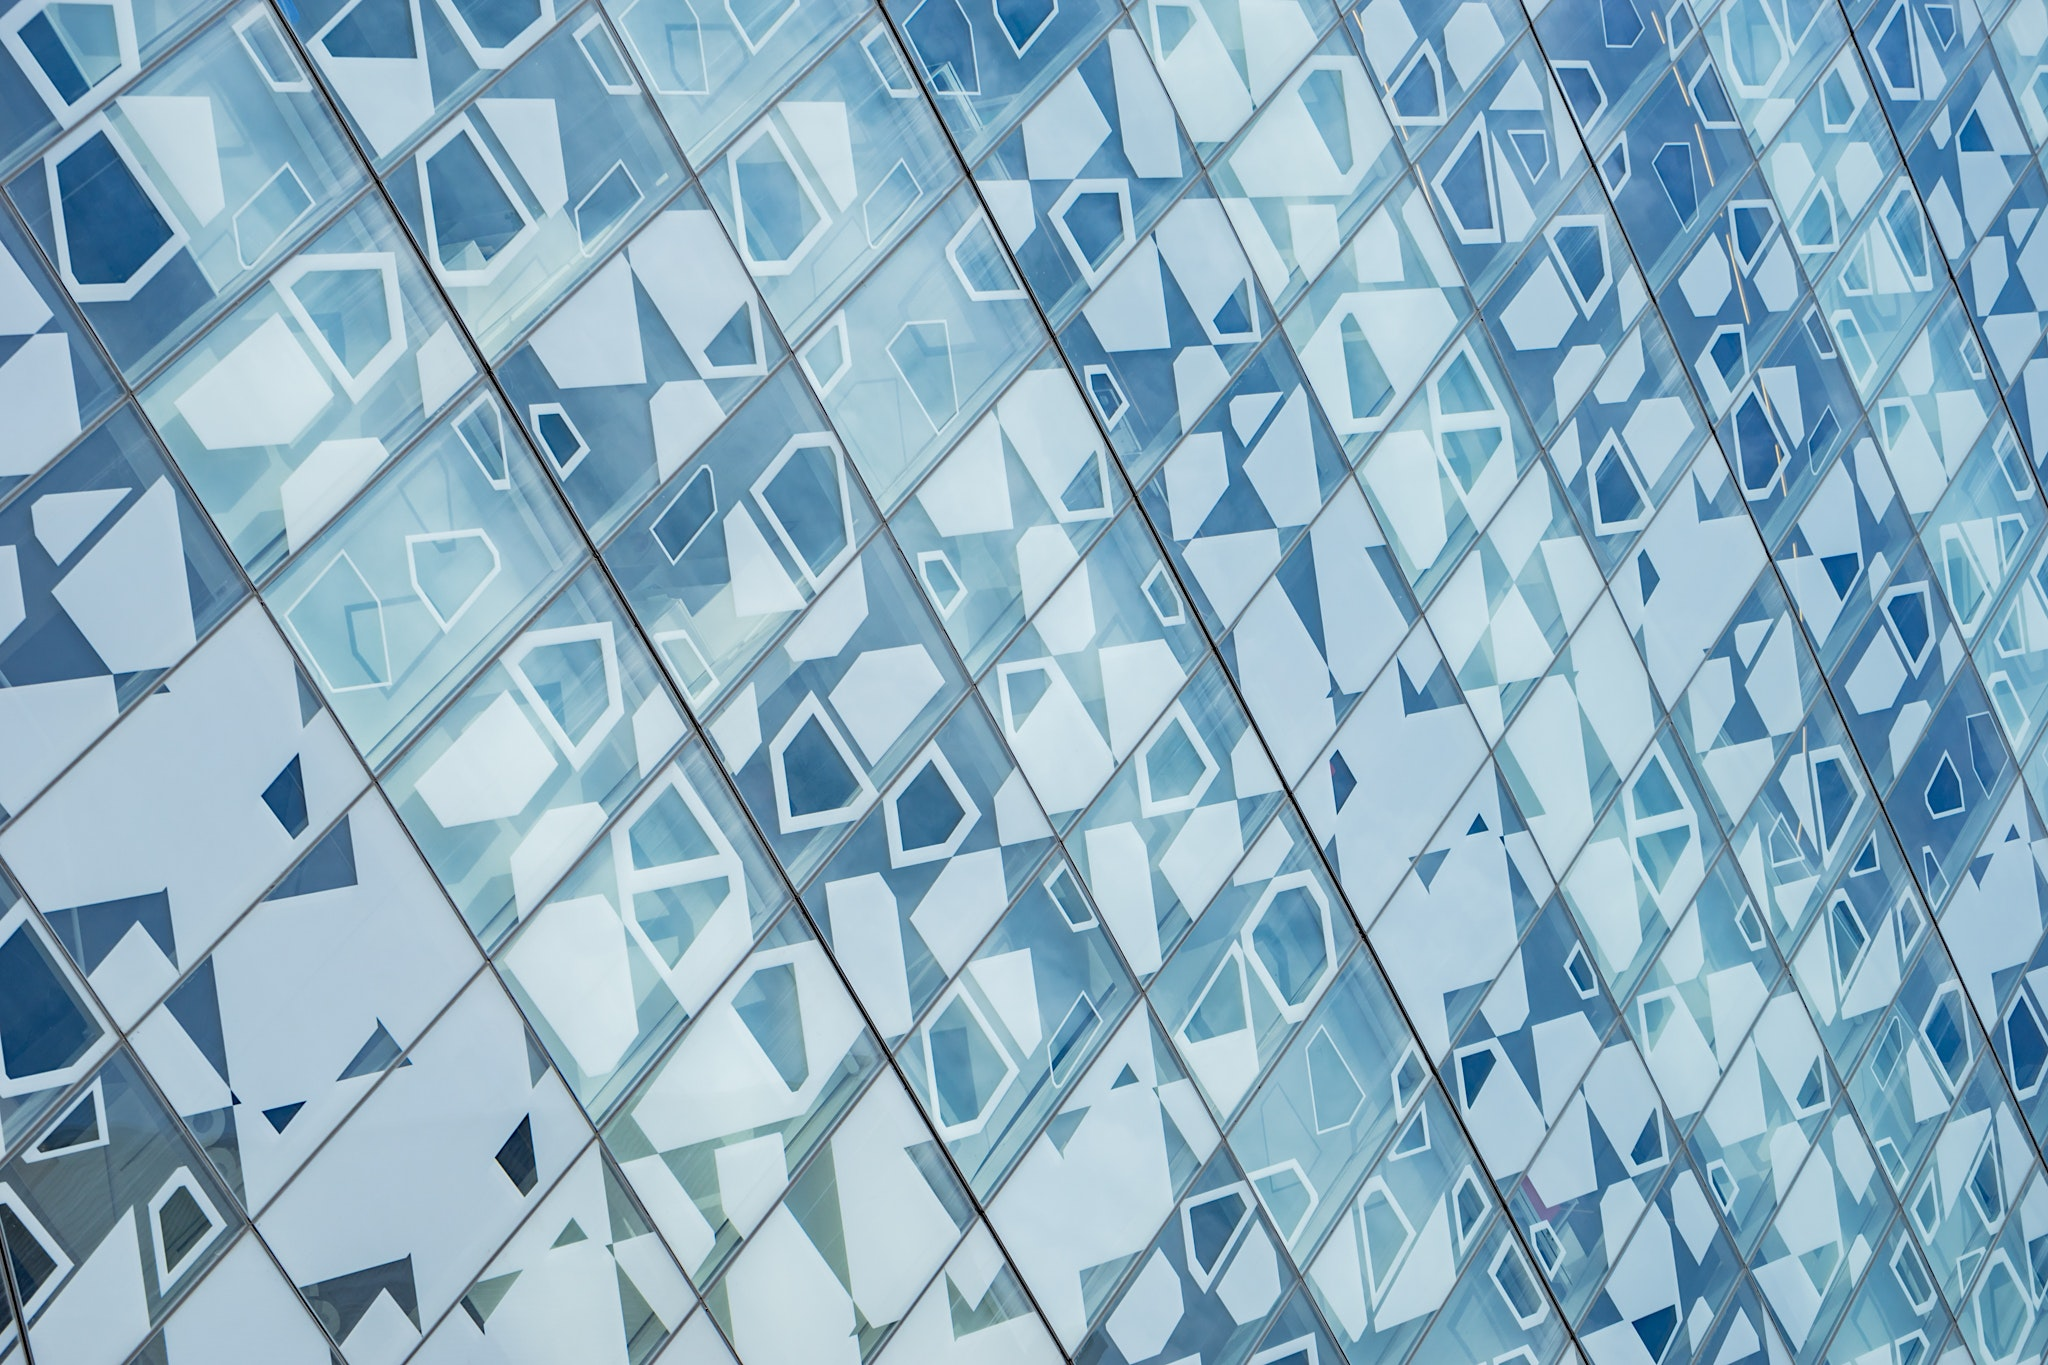 Detail photo of Ryerson Student Leaning Centre by Architectural Photographer Scott Webb